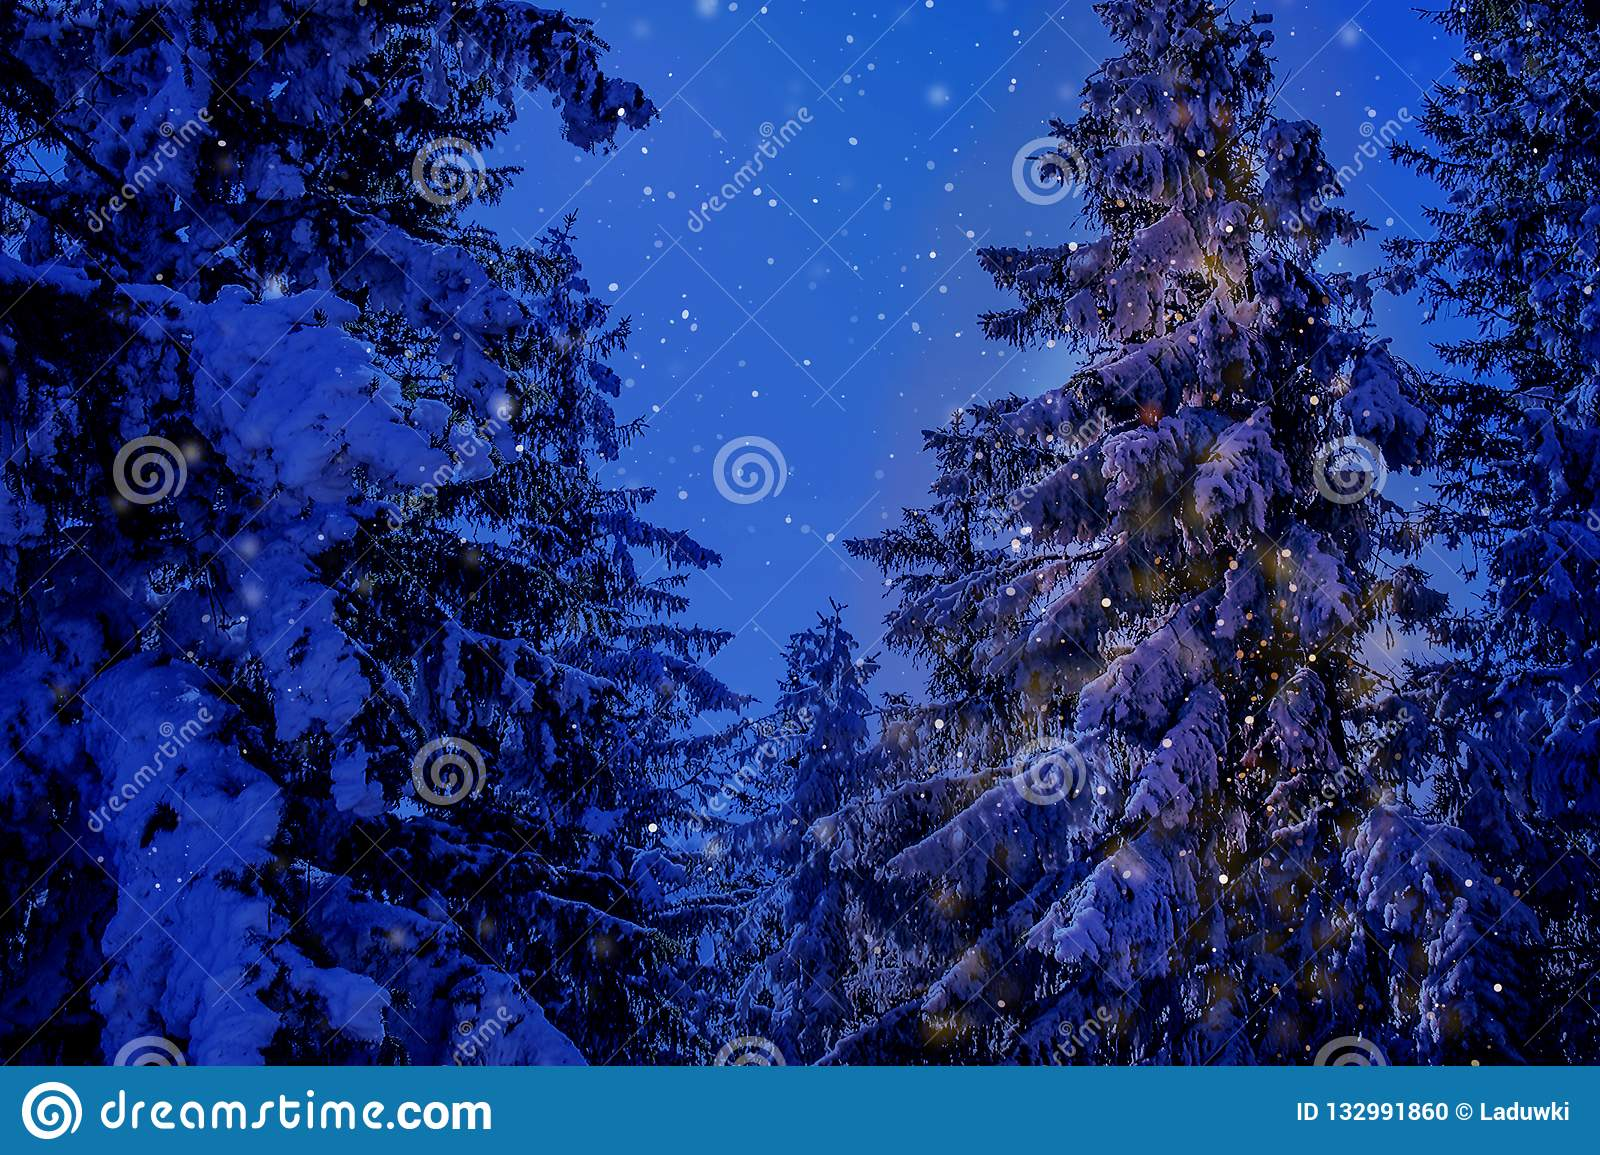 Winter wonderland christmas mountain scenery with centuries-old spruce and pine in the austrian Alps in night magic light